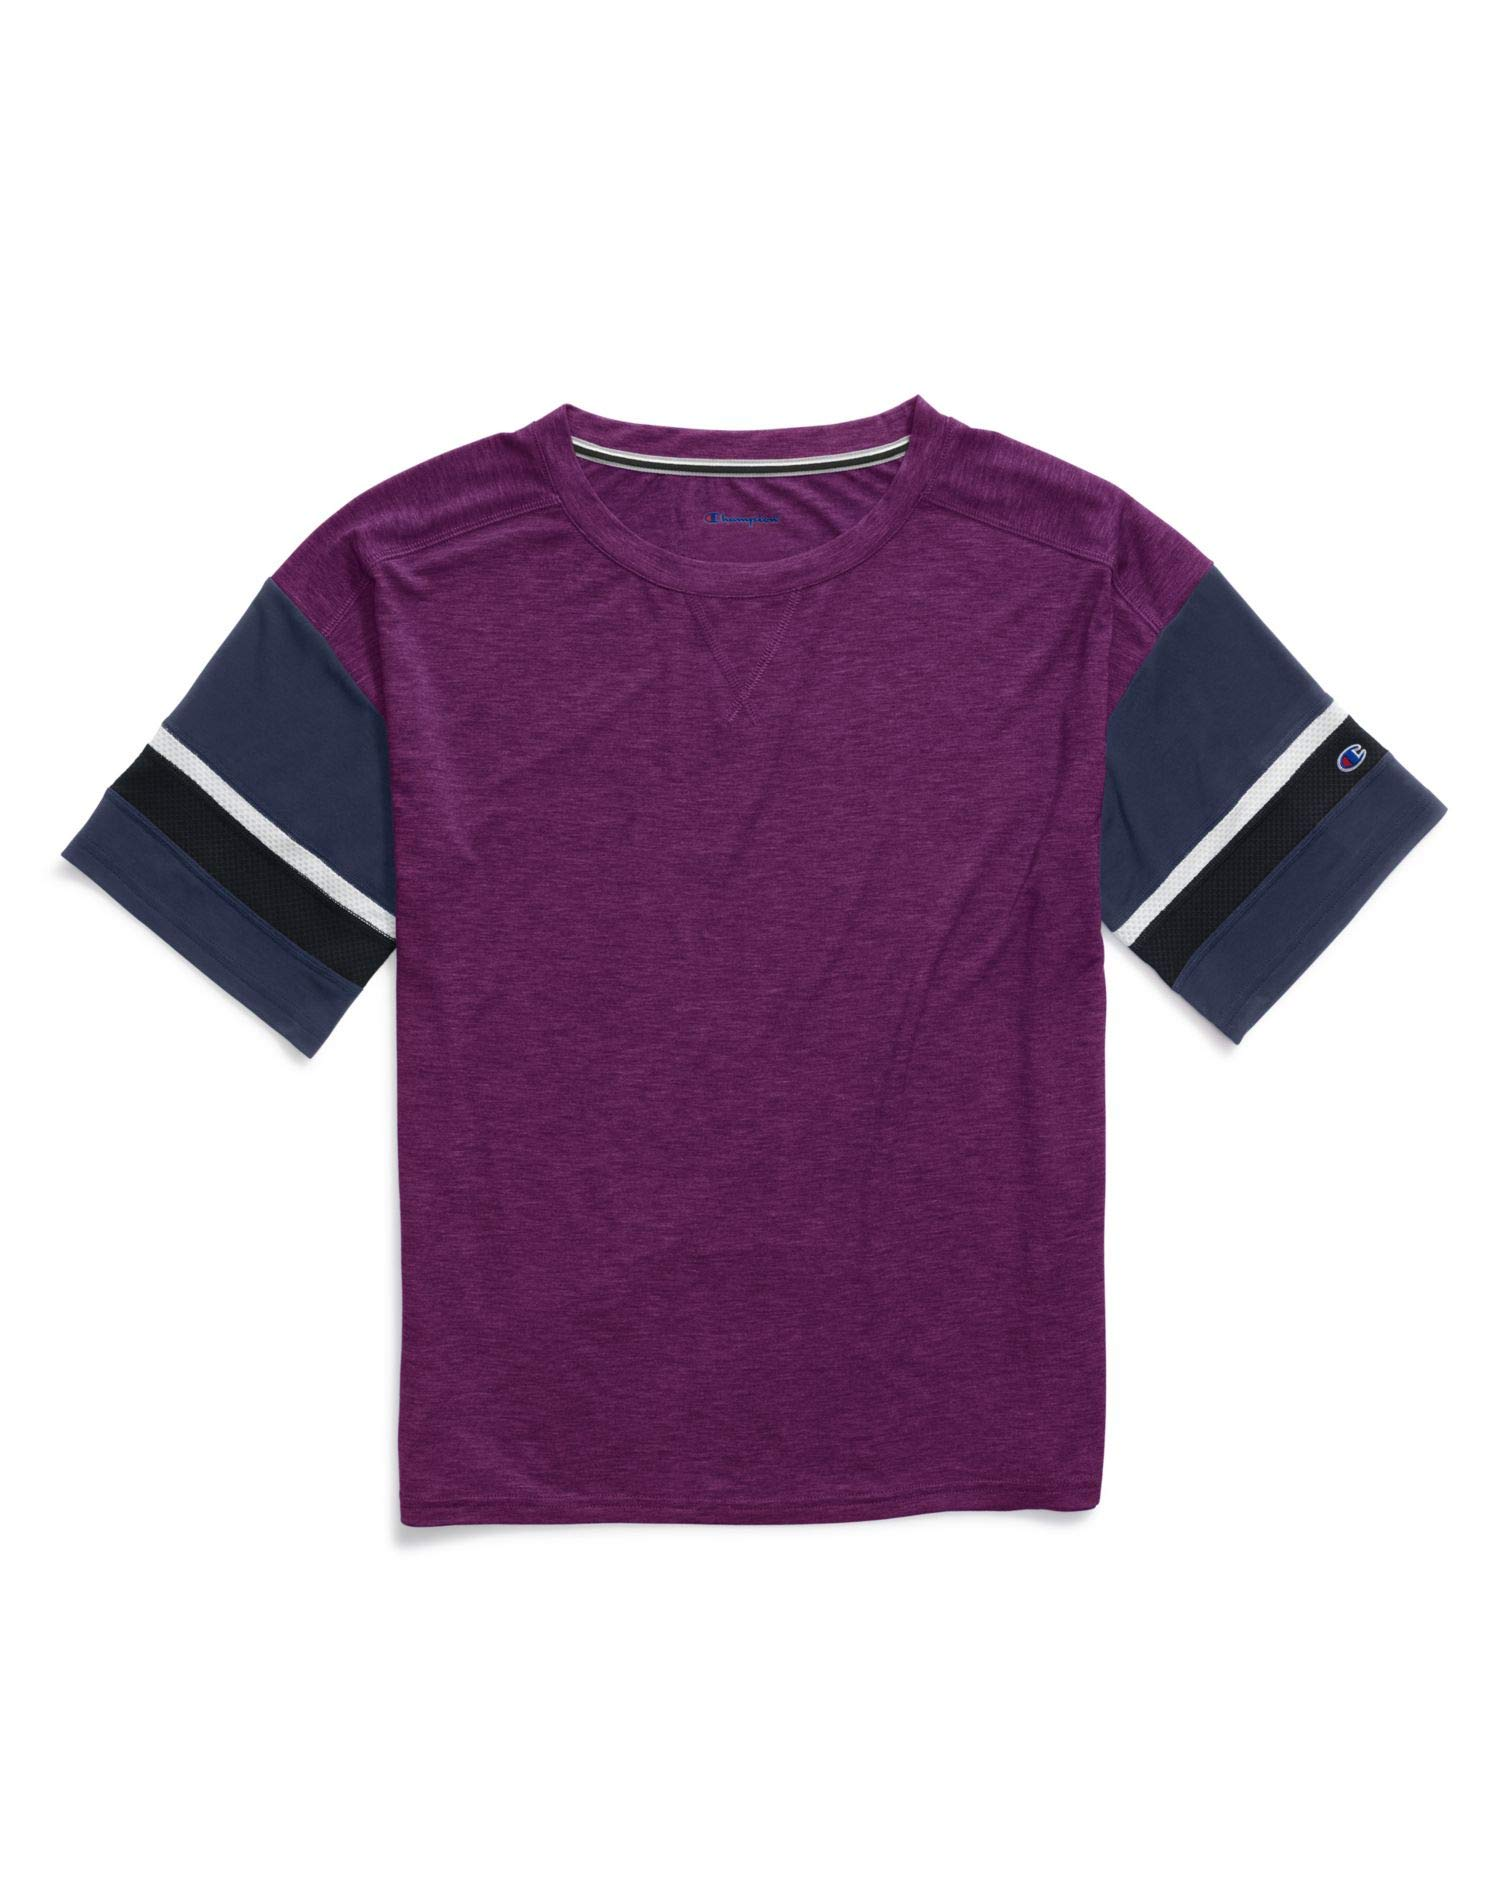 Champion Womens Gym Issue Football Tee, M, Dark Berry Purple Heather